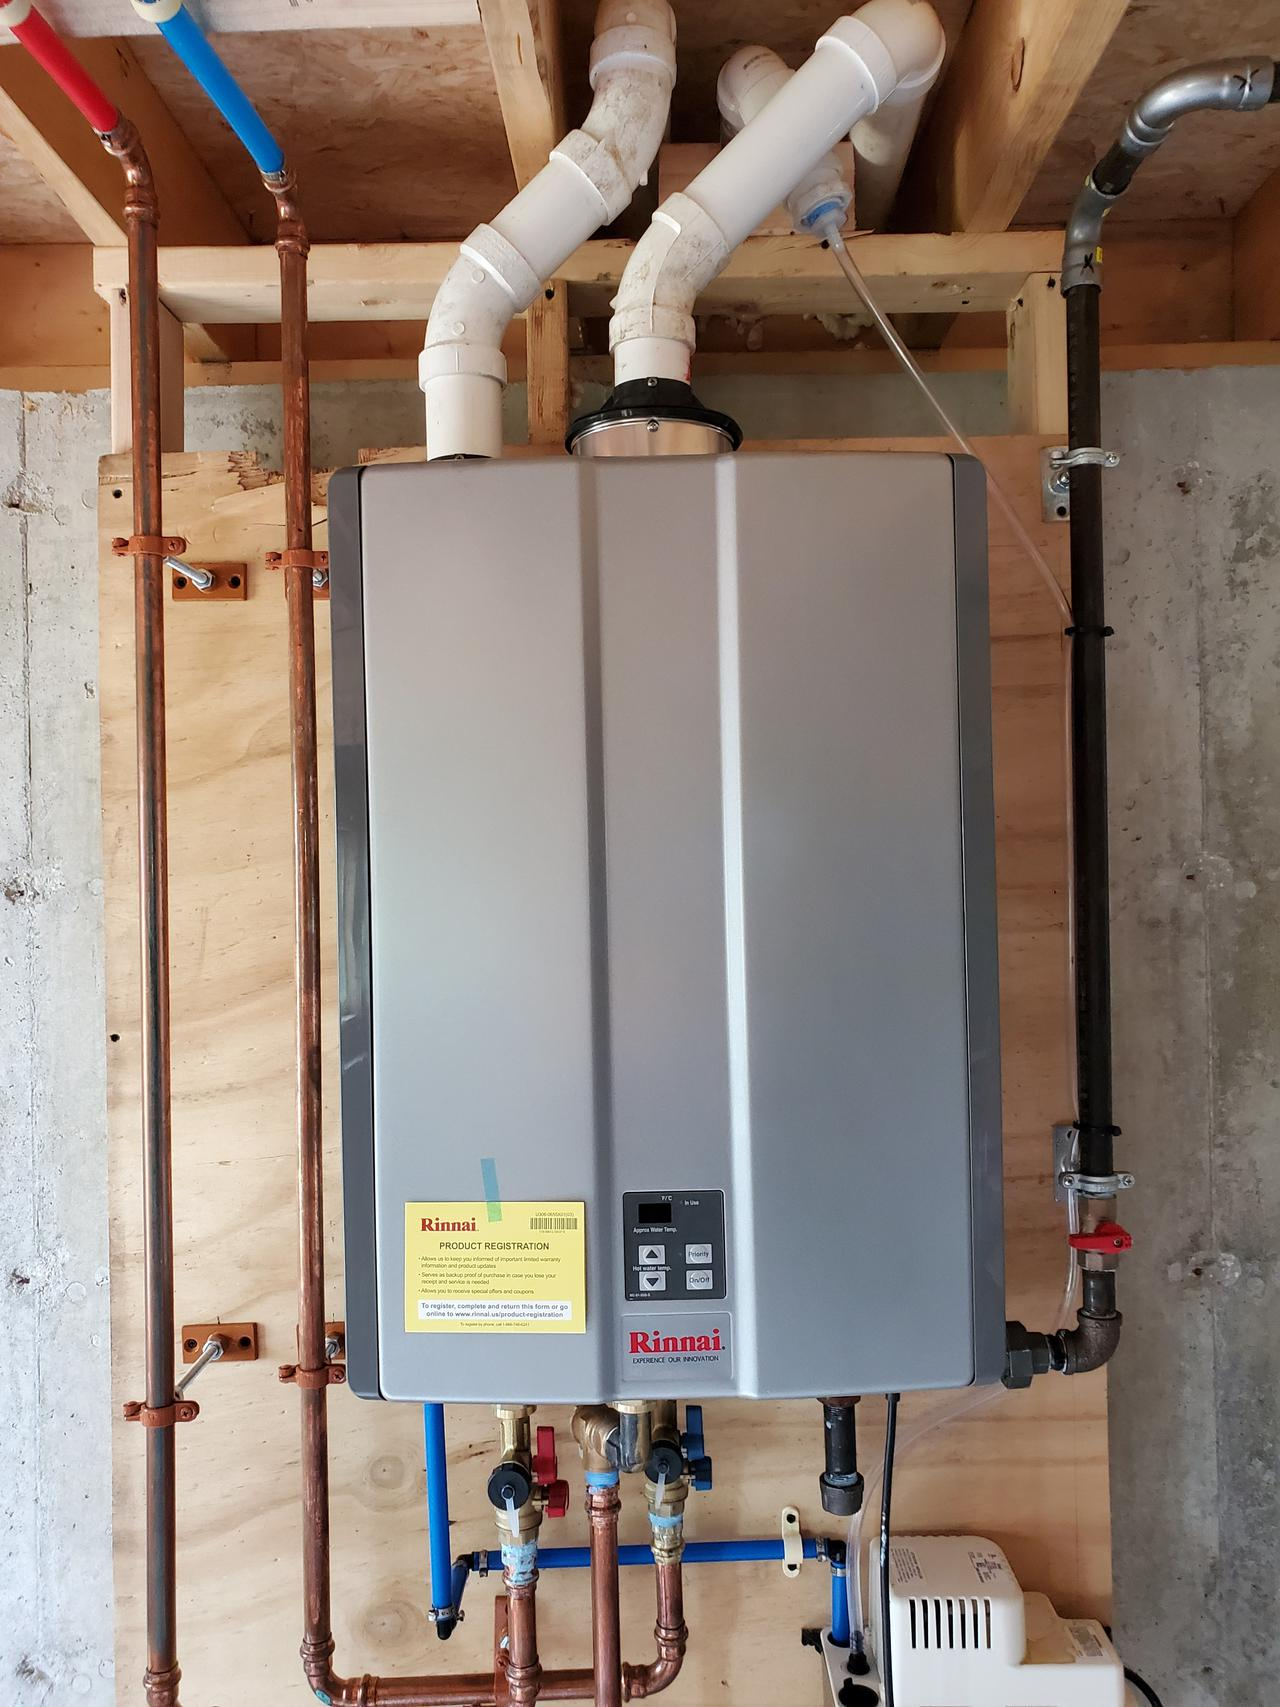 We do boiler repair and more in Lakeville, MA.